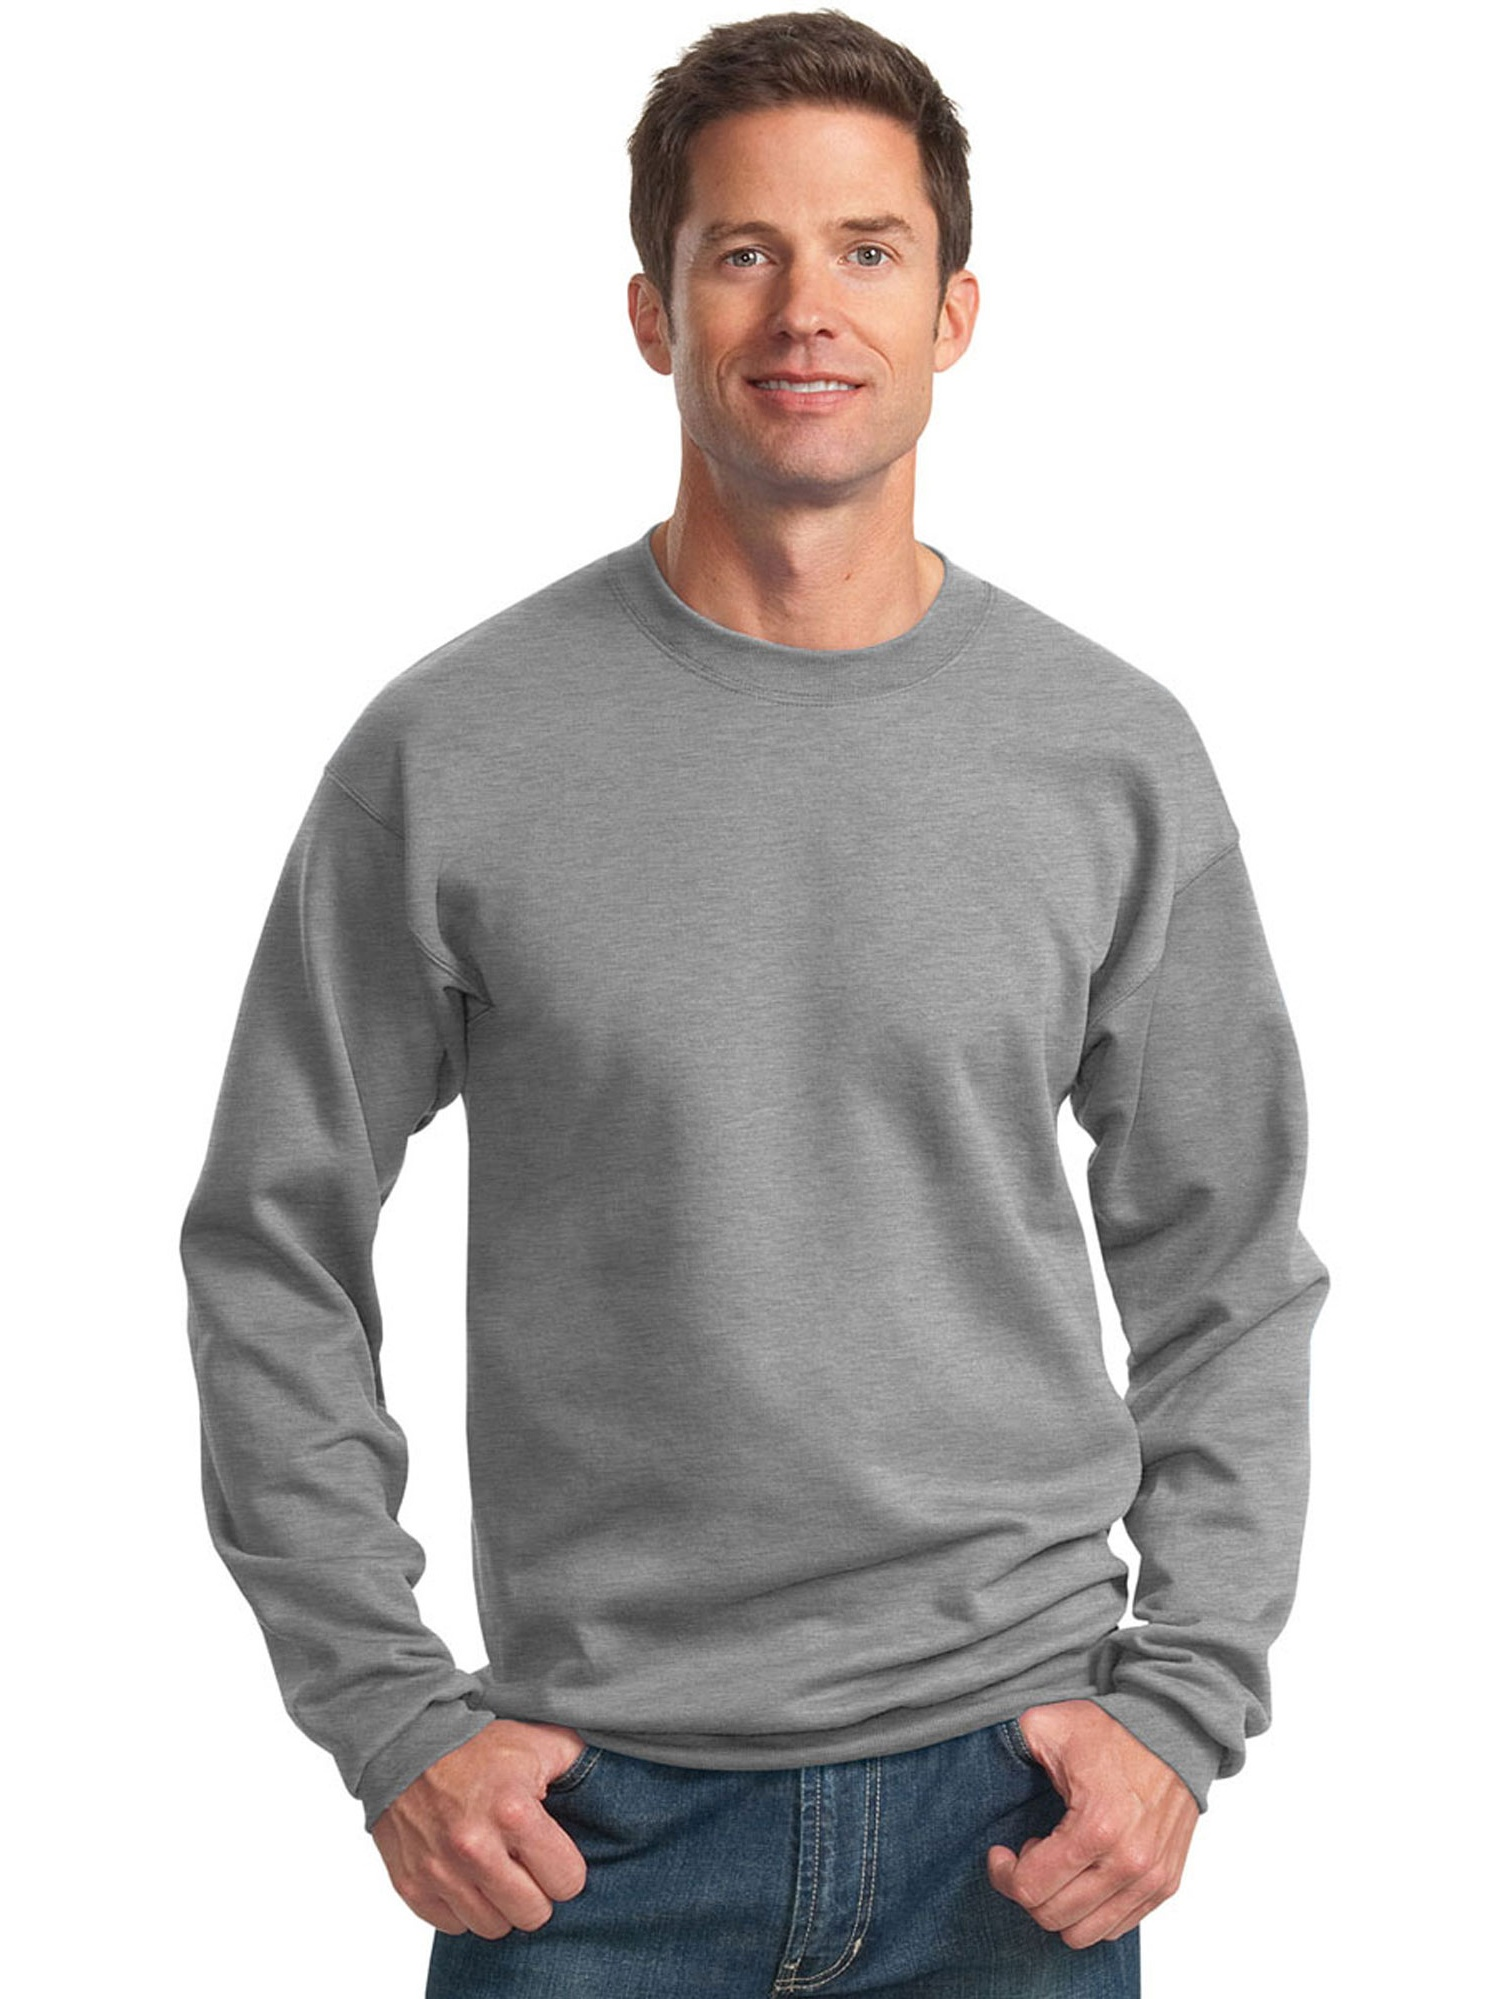 Port & Company Men's Crewneck Perfect Relaxing Sweatshirt